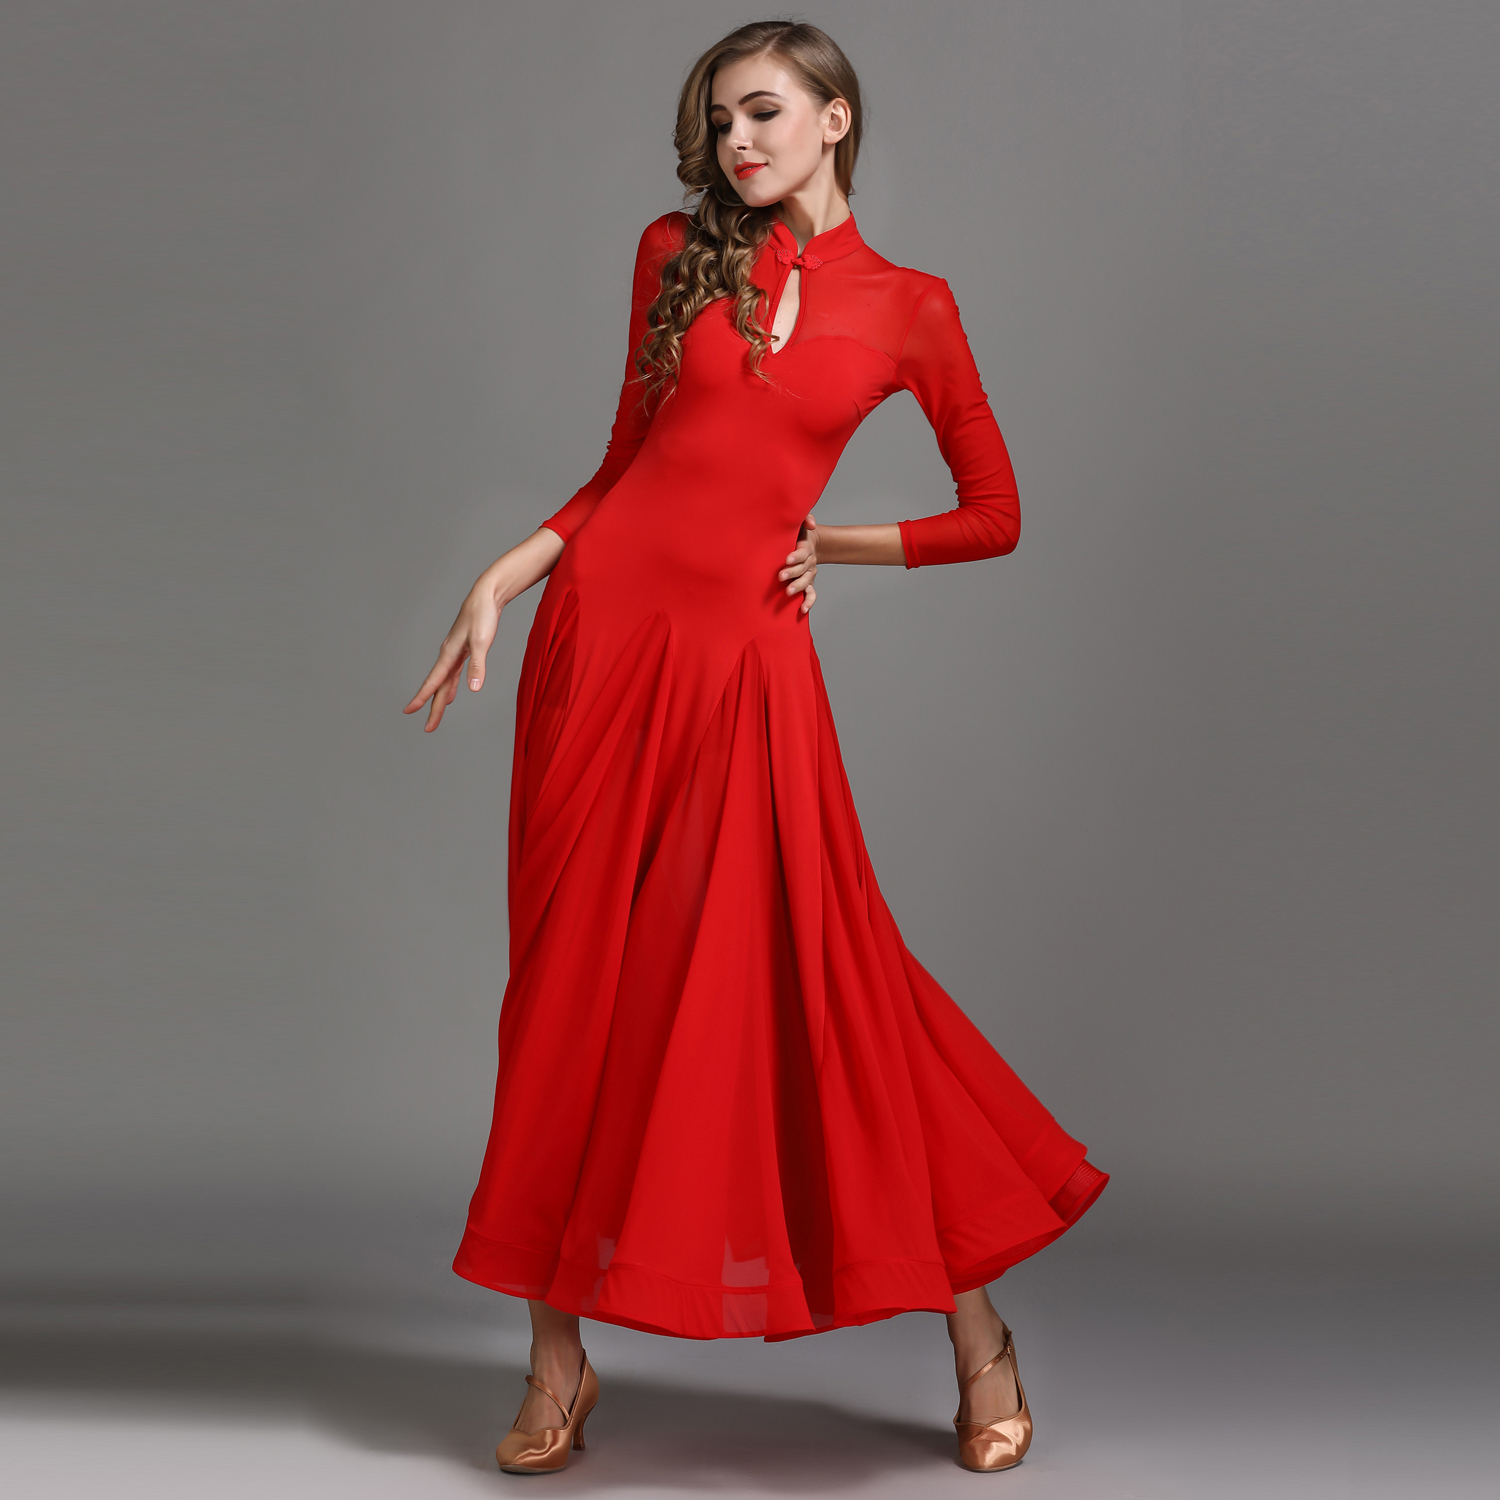 Modern Dance Costume Women Lady Waltzing Tango Dance Dress Ballroom Costume Chinese Frock Evening Party Dress набор sony singstar dance party pack